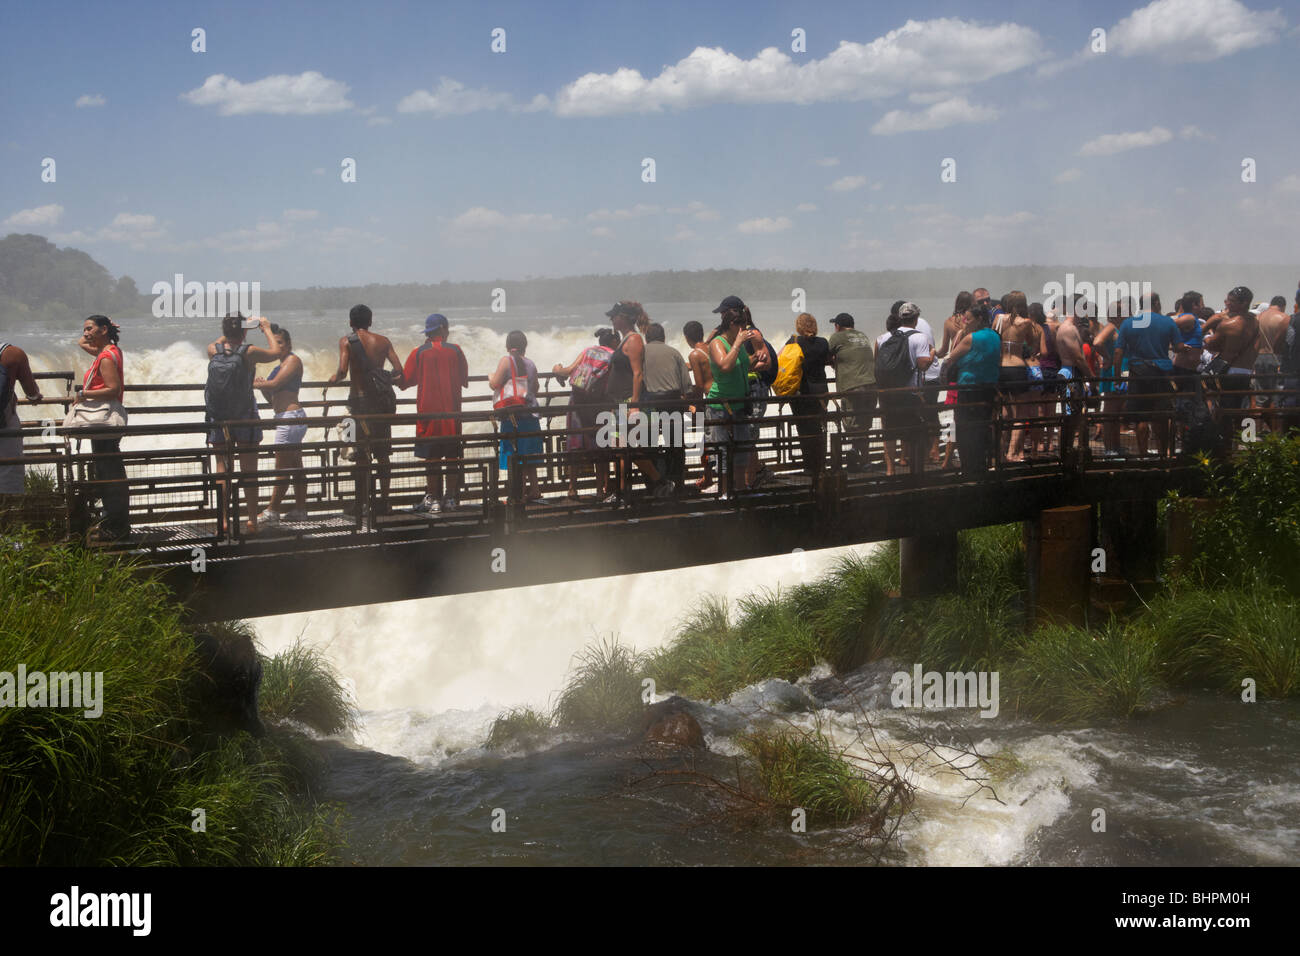 tourists on the devils throat circuit trail walkway in iguazu national park, republic of argentina, south america - Stock Image